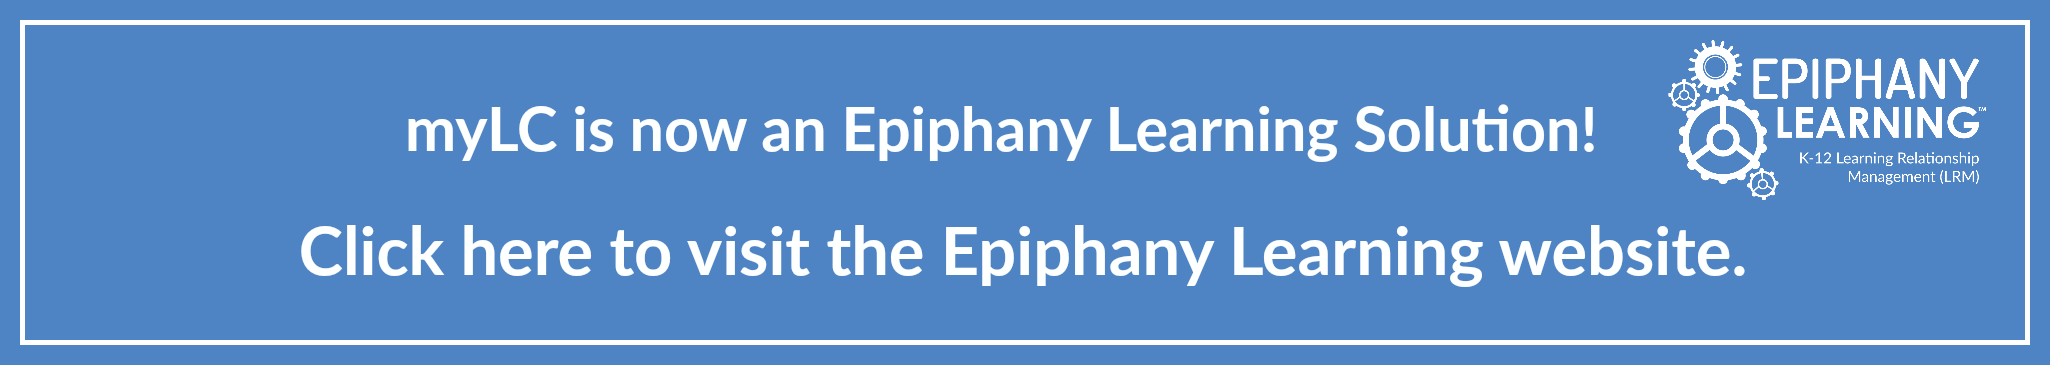 Epiphany Learning Announcement!